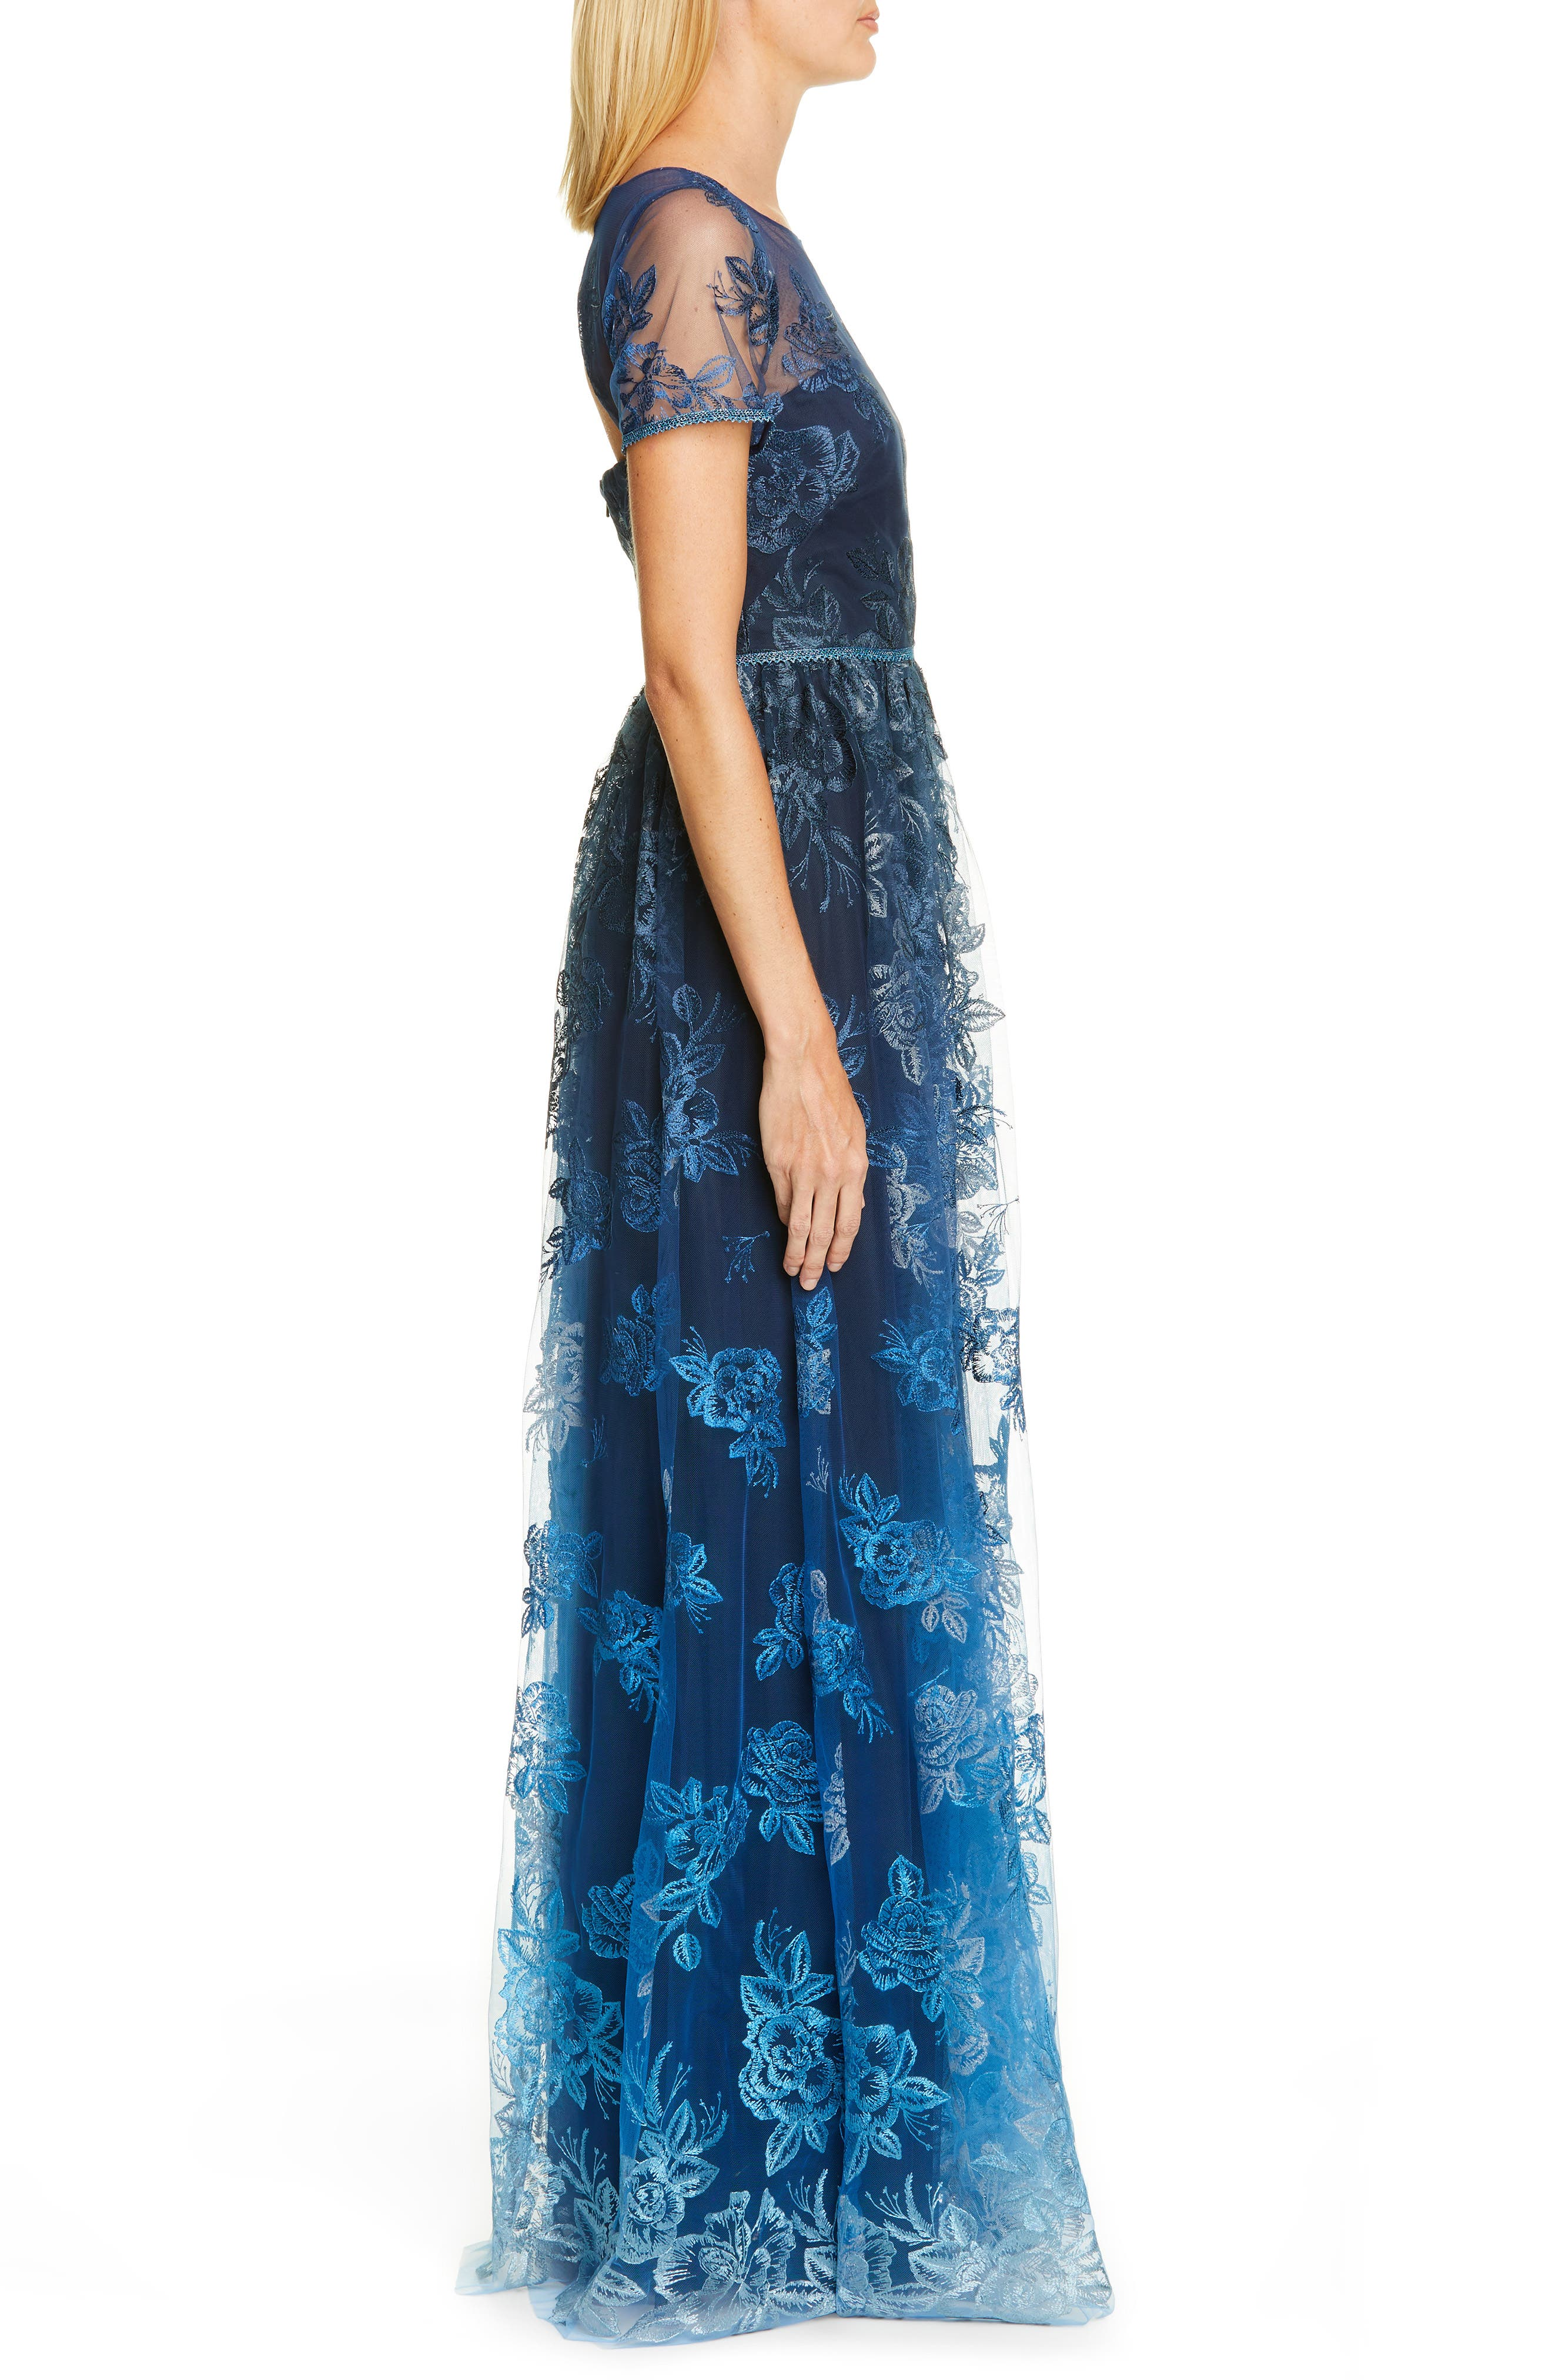 MARCHESA NOTTE, Ombré Embroidered Gown, Alternate thumbnail 4, color, NAVY